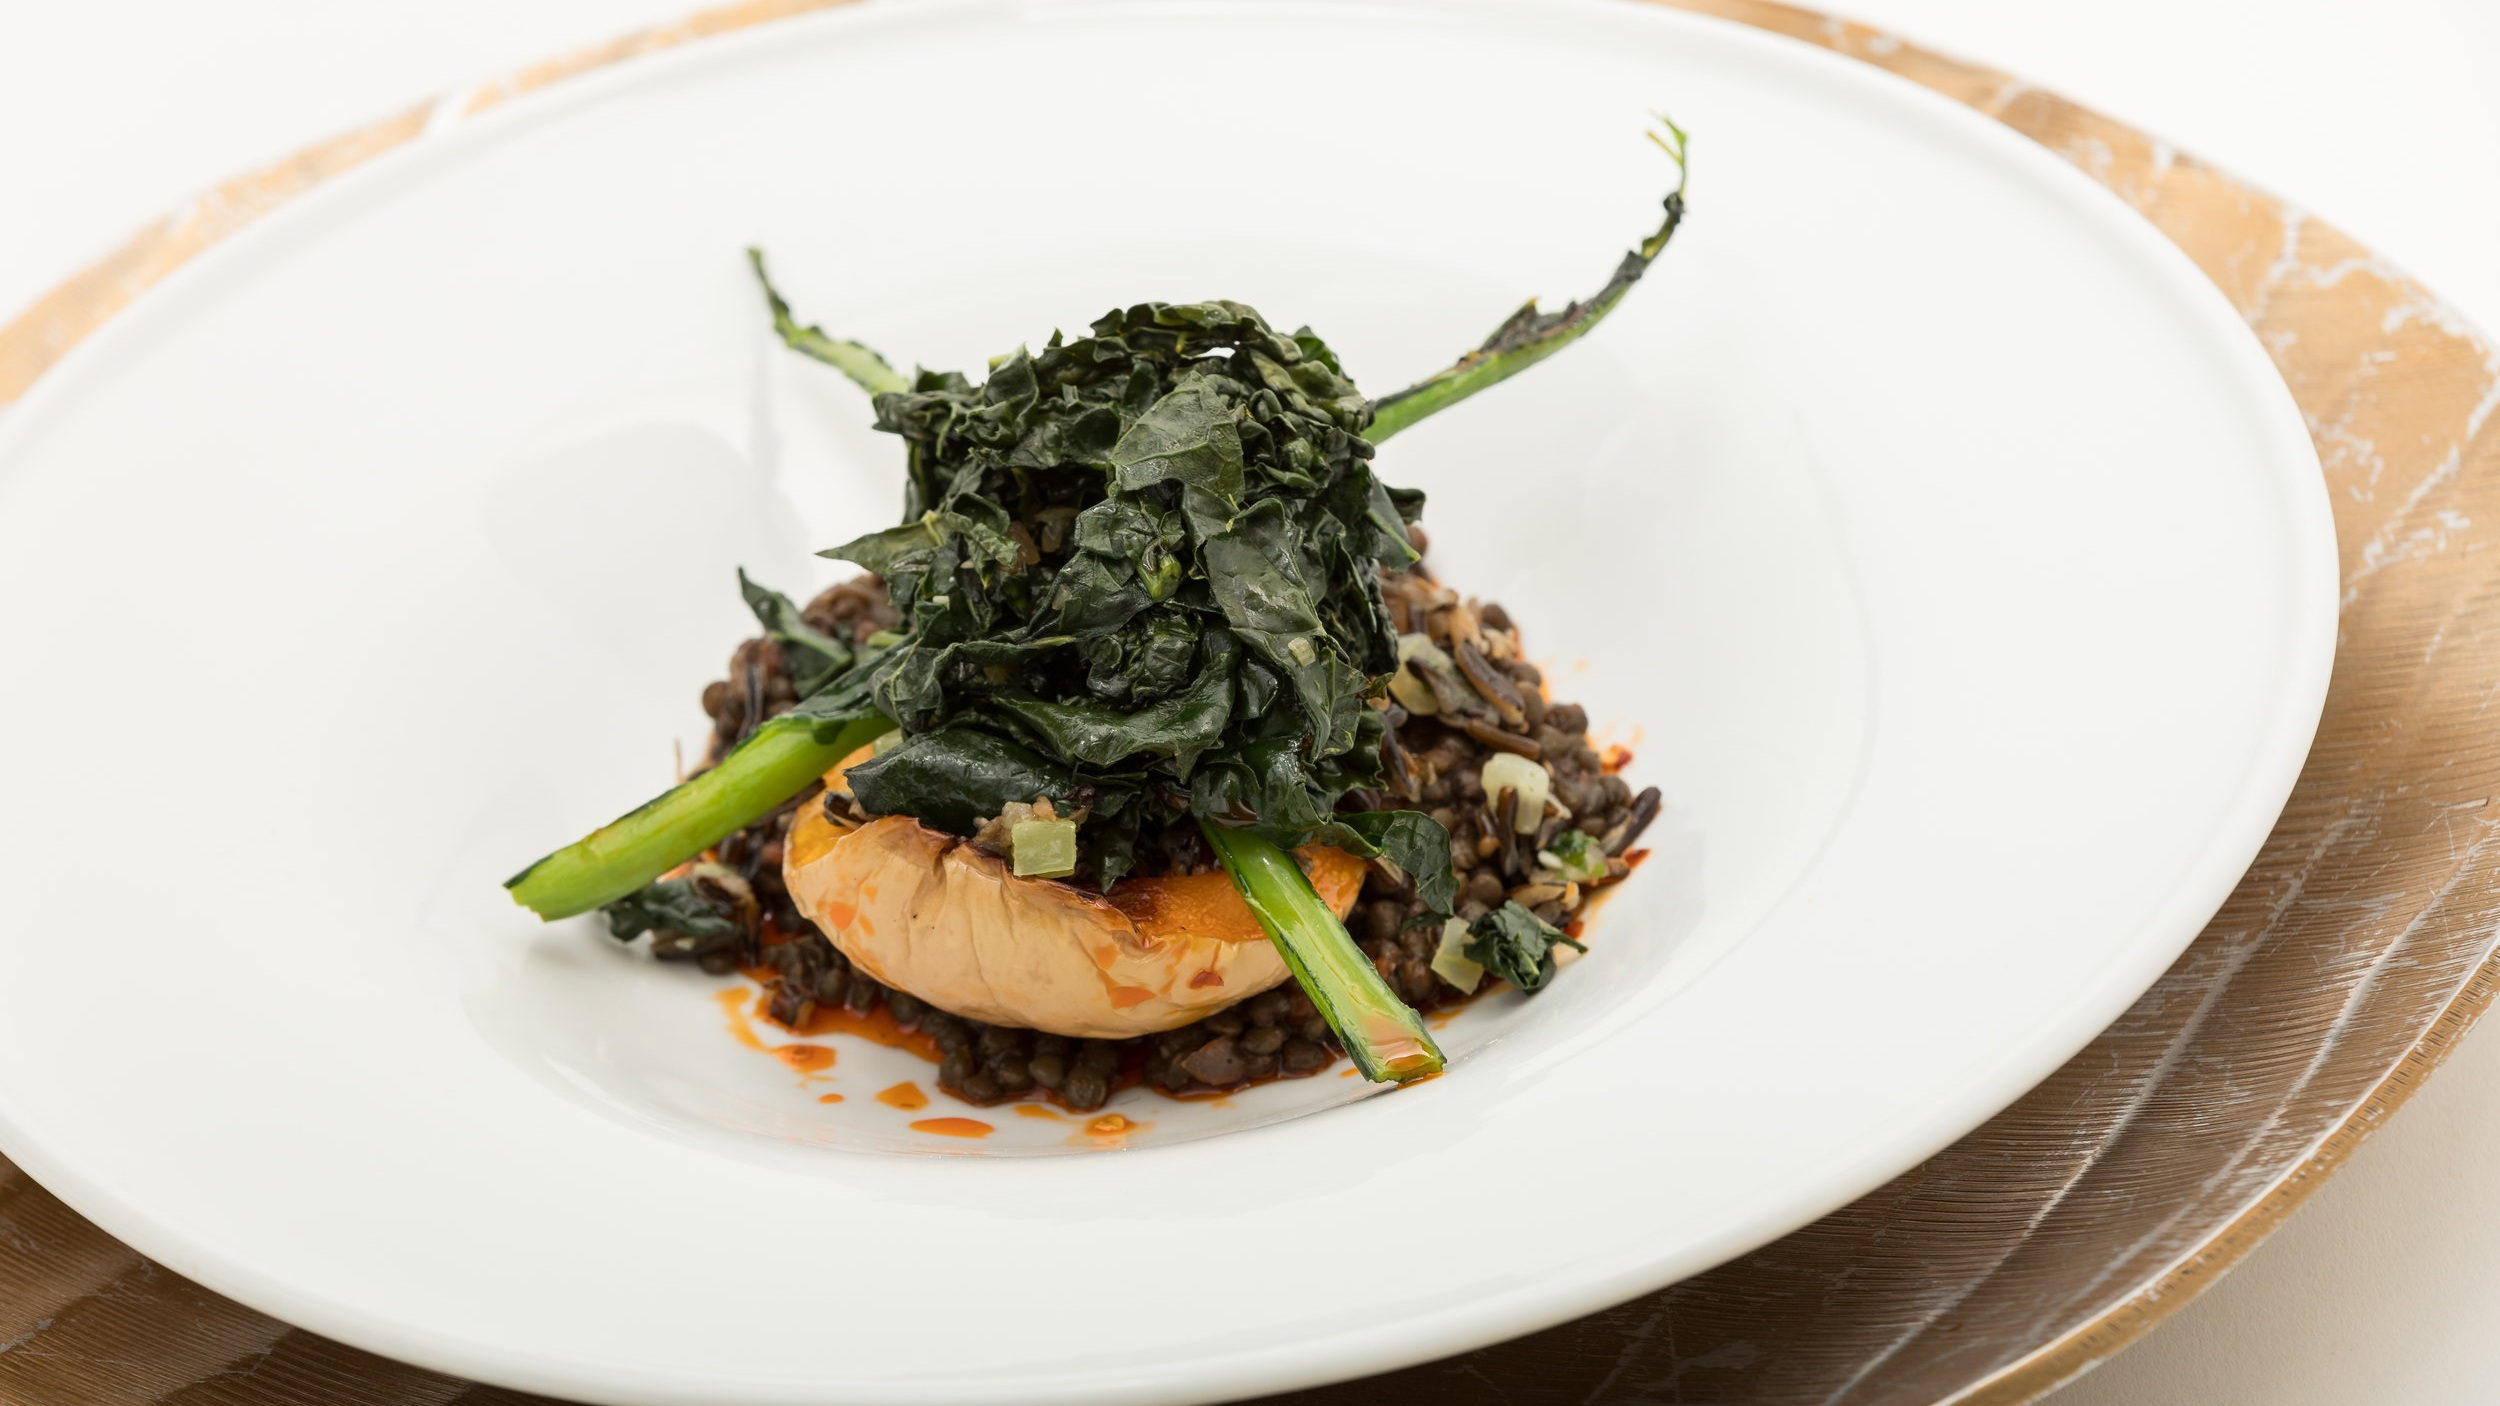 Five-Spice Beluga Lentils & Roast Butternut Squash w_Wild Rice, Greens, Chili Oil & Black Vinegar_Amanda Gentile7.jpg